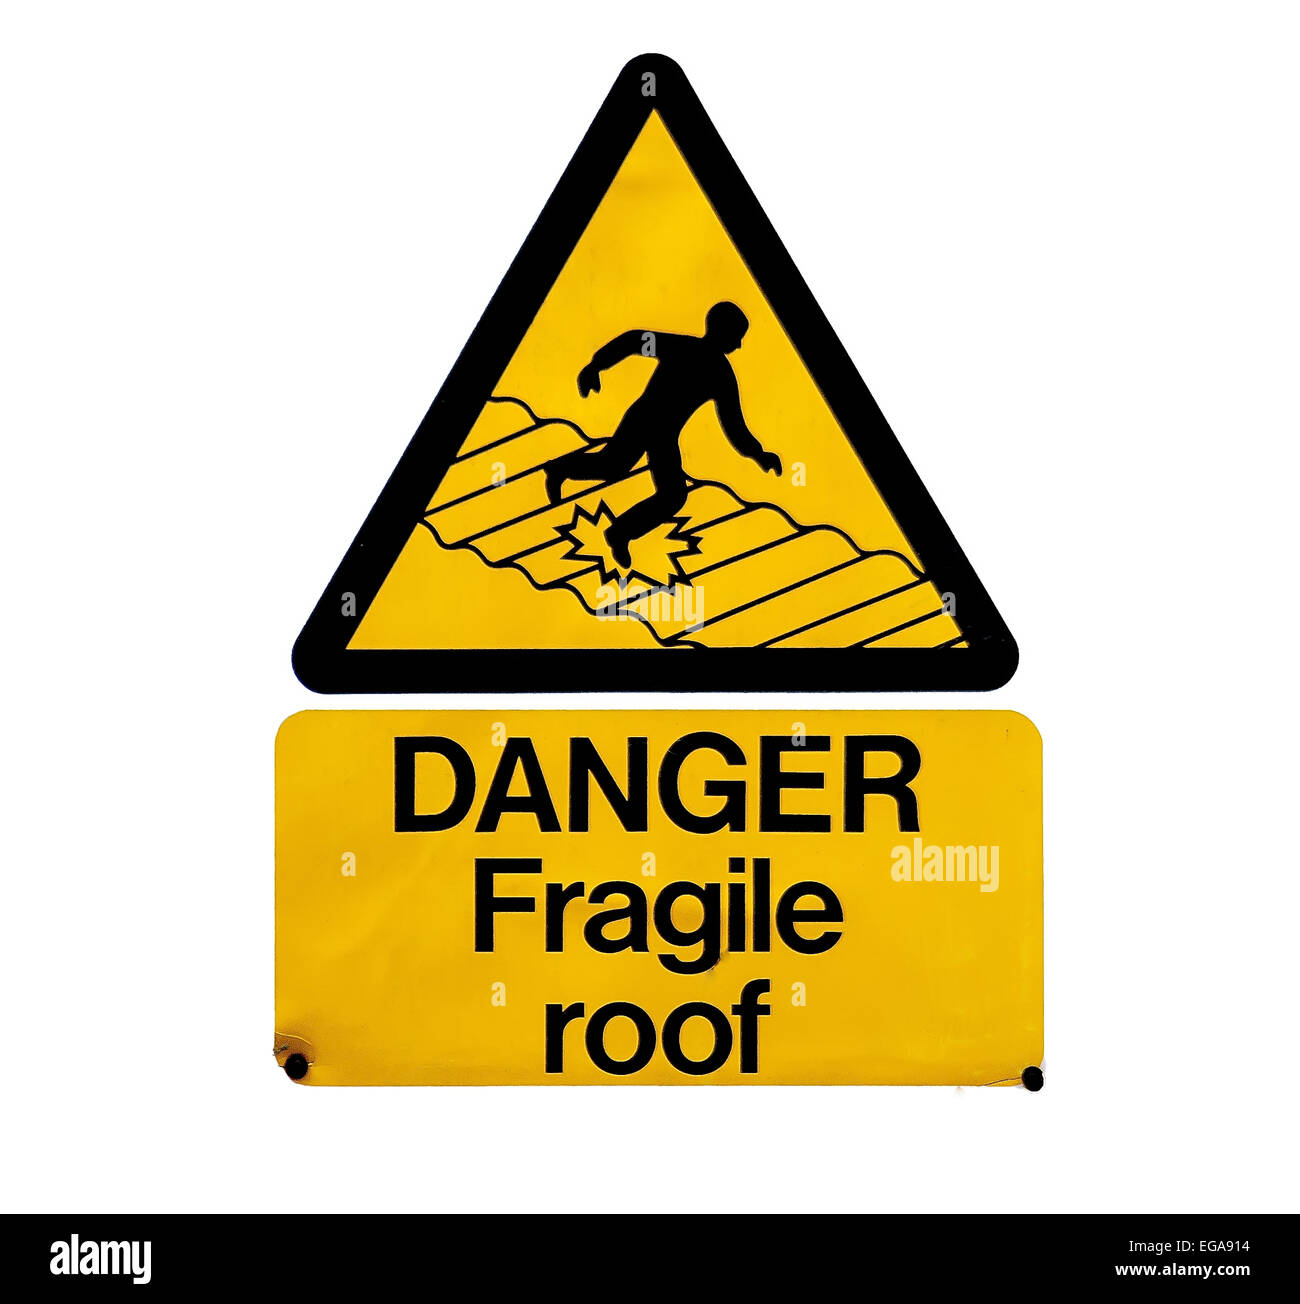 Roof,Sign,edge,Warning Sign,Danger,Slippery,Outdoors,Symbol,Rectangle,Yellow,white background,falling,steep, - Stock Image